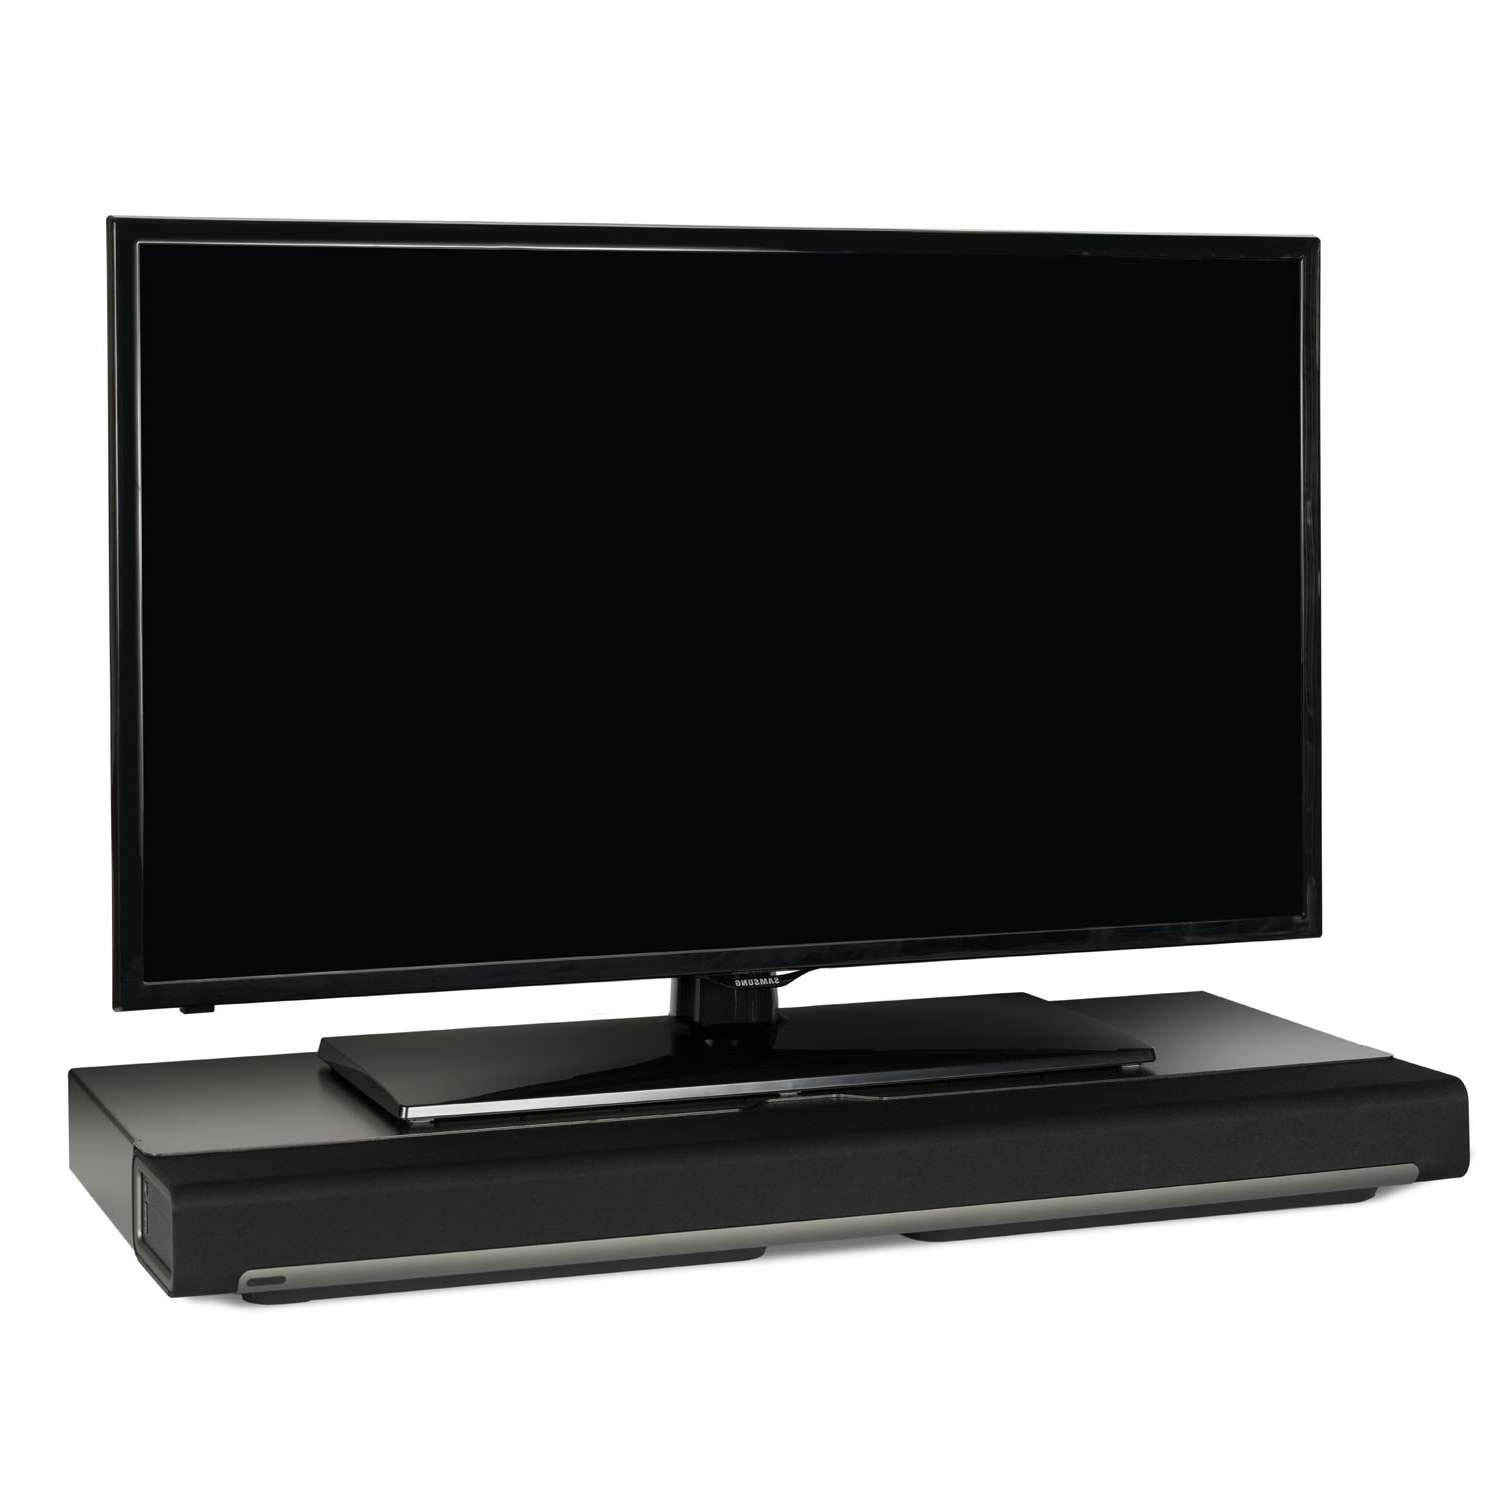 Flexson Tv Stand For Sonos Playbar – Black (Single) – Sonos Intended For Sonos Tv Stands (View 8 of 15)